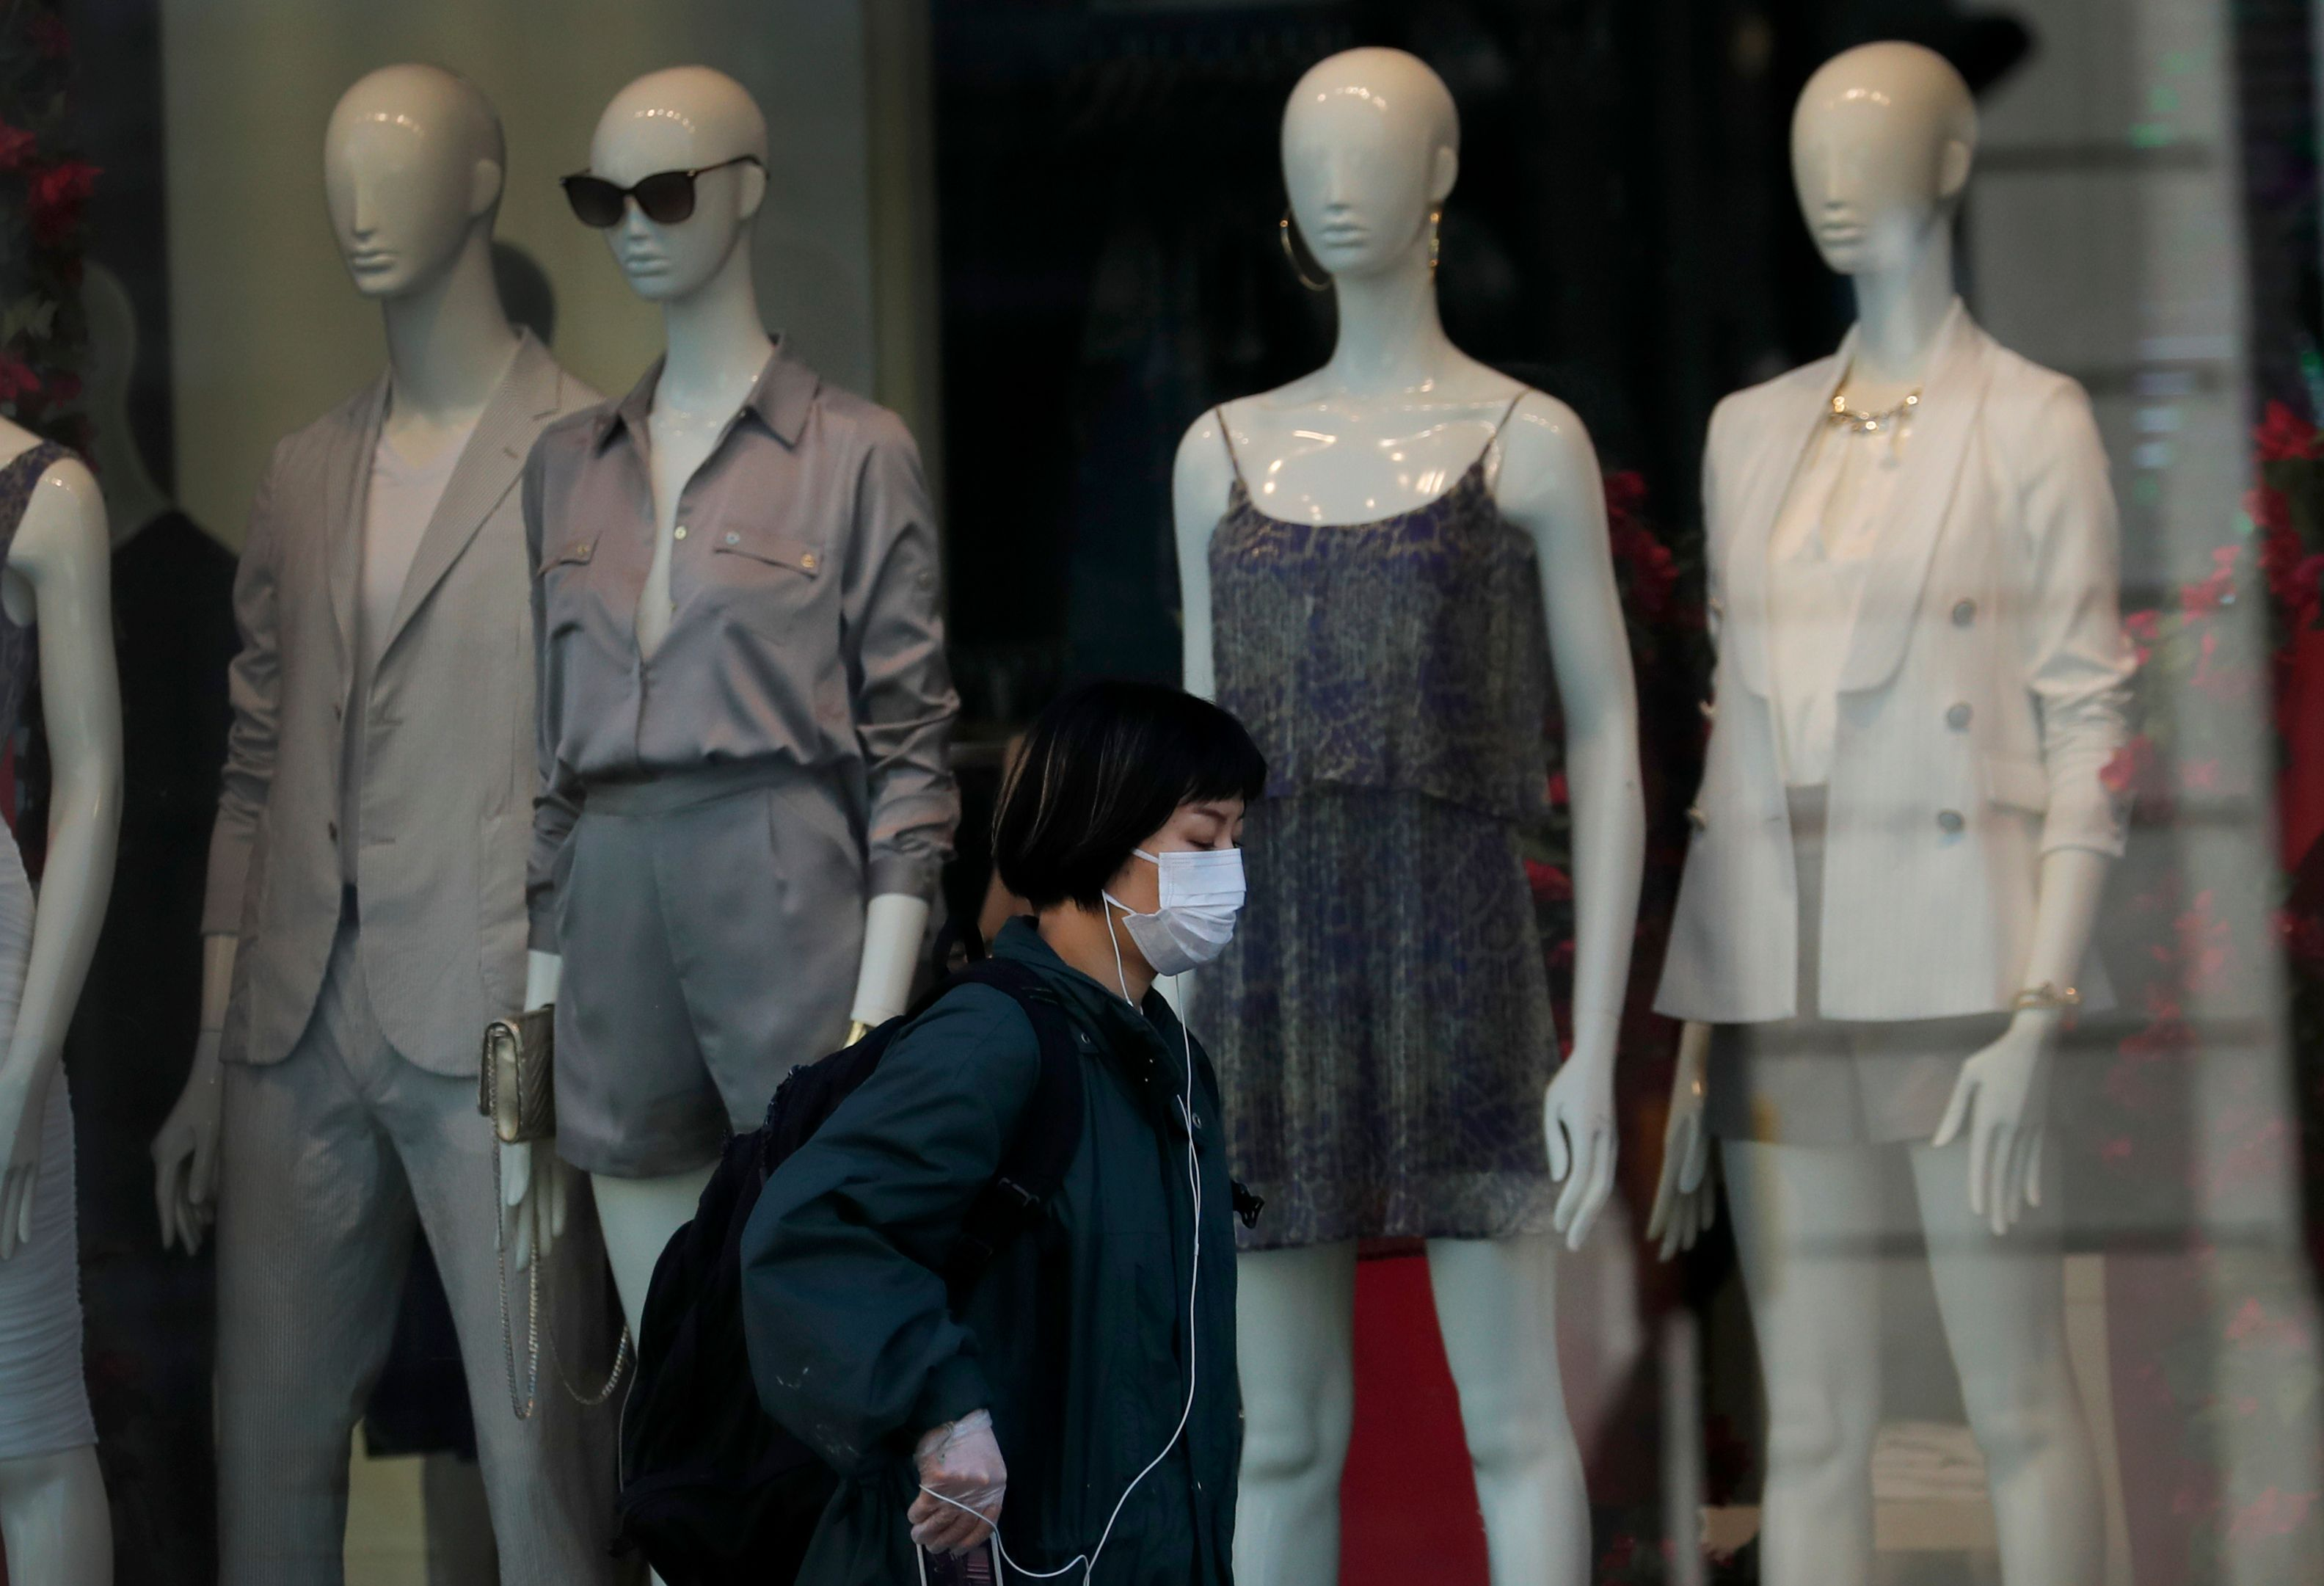 Woman wearing a face mask walks past a closed shop on Oxford Street in London, as the country is in lockdown to help curb the spread of the coronavirus, . Experts in the UK have warned that the economy could shrink by up to 35% as a knock on effect of the lockdown. The highly contagious COVID-19 coronavirus has impacted on nations around the globe, many imposing self isolation and exercising social distancing when people move from their homesVirus Outbreak Economy, London, United Kingdom - 15 Apr 2020